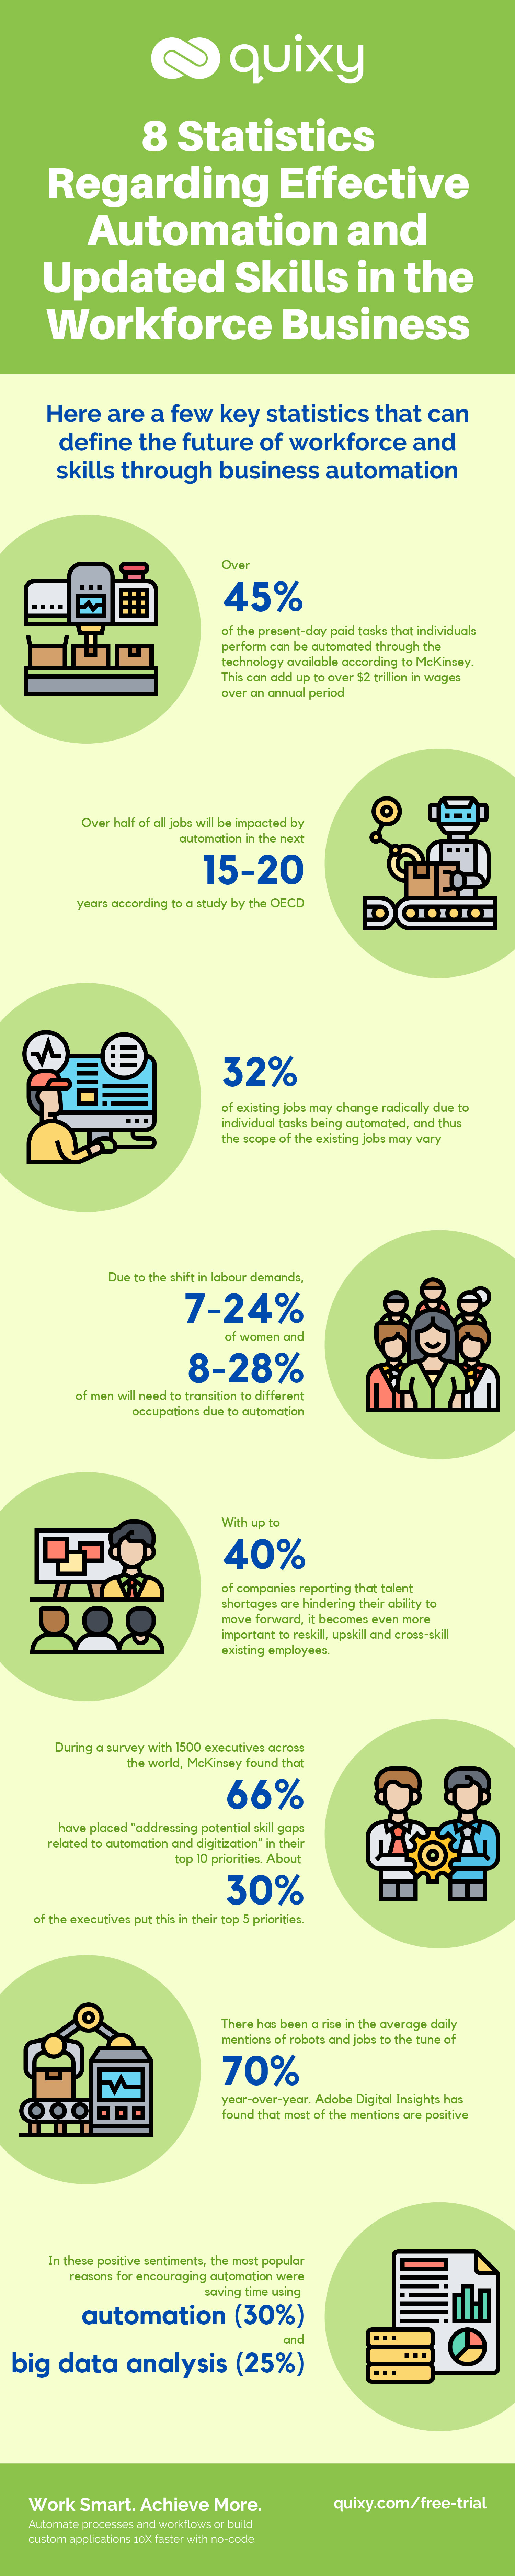 8 Statistics Regarding Effective Automation and Updated Skills in the Workforce